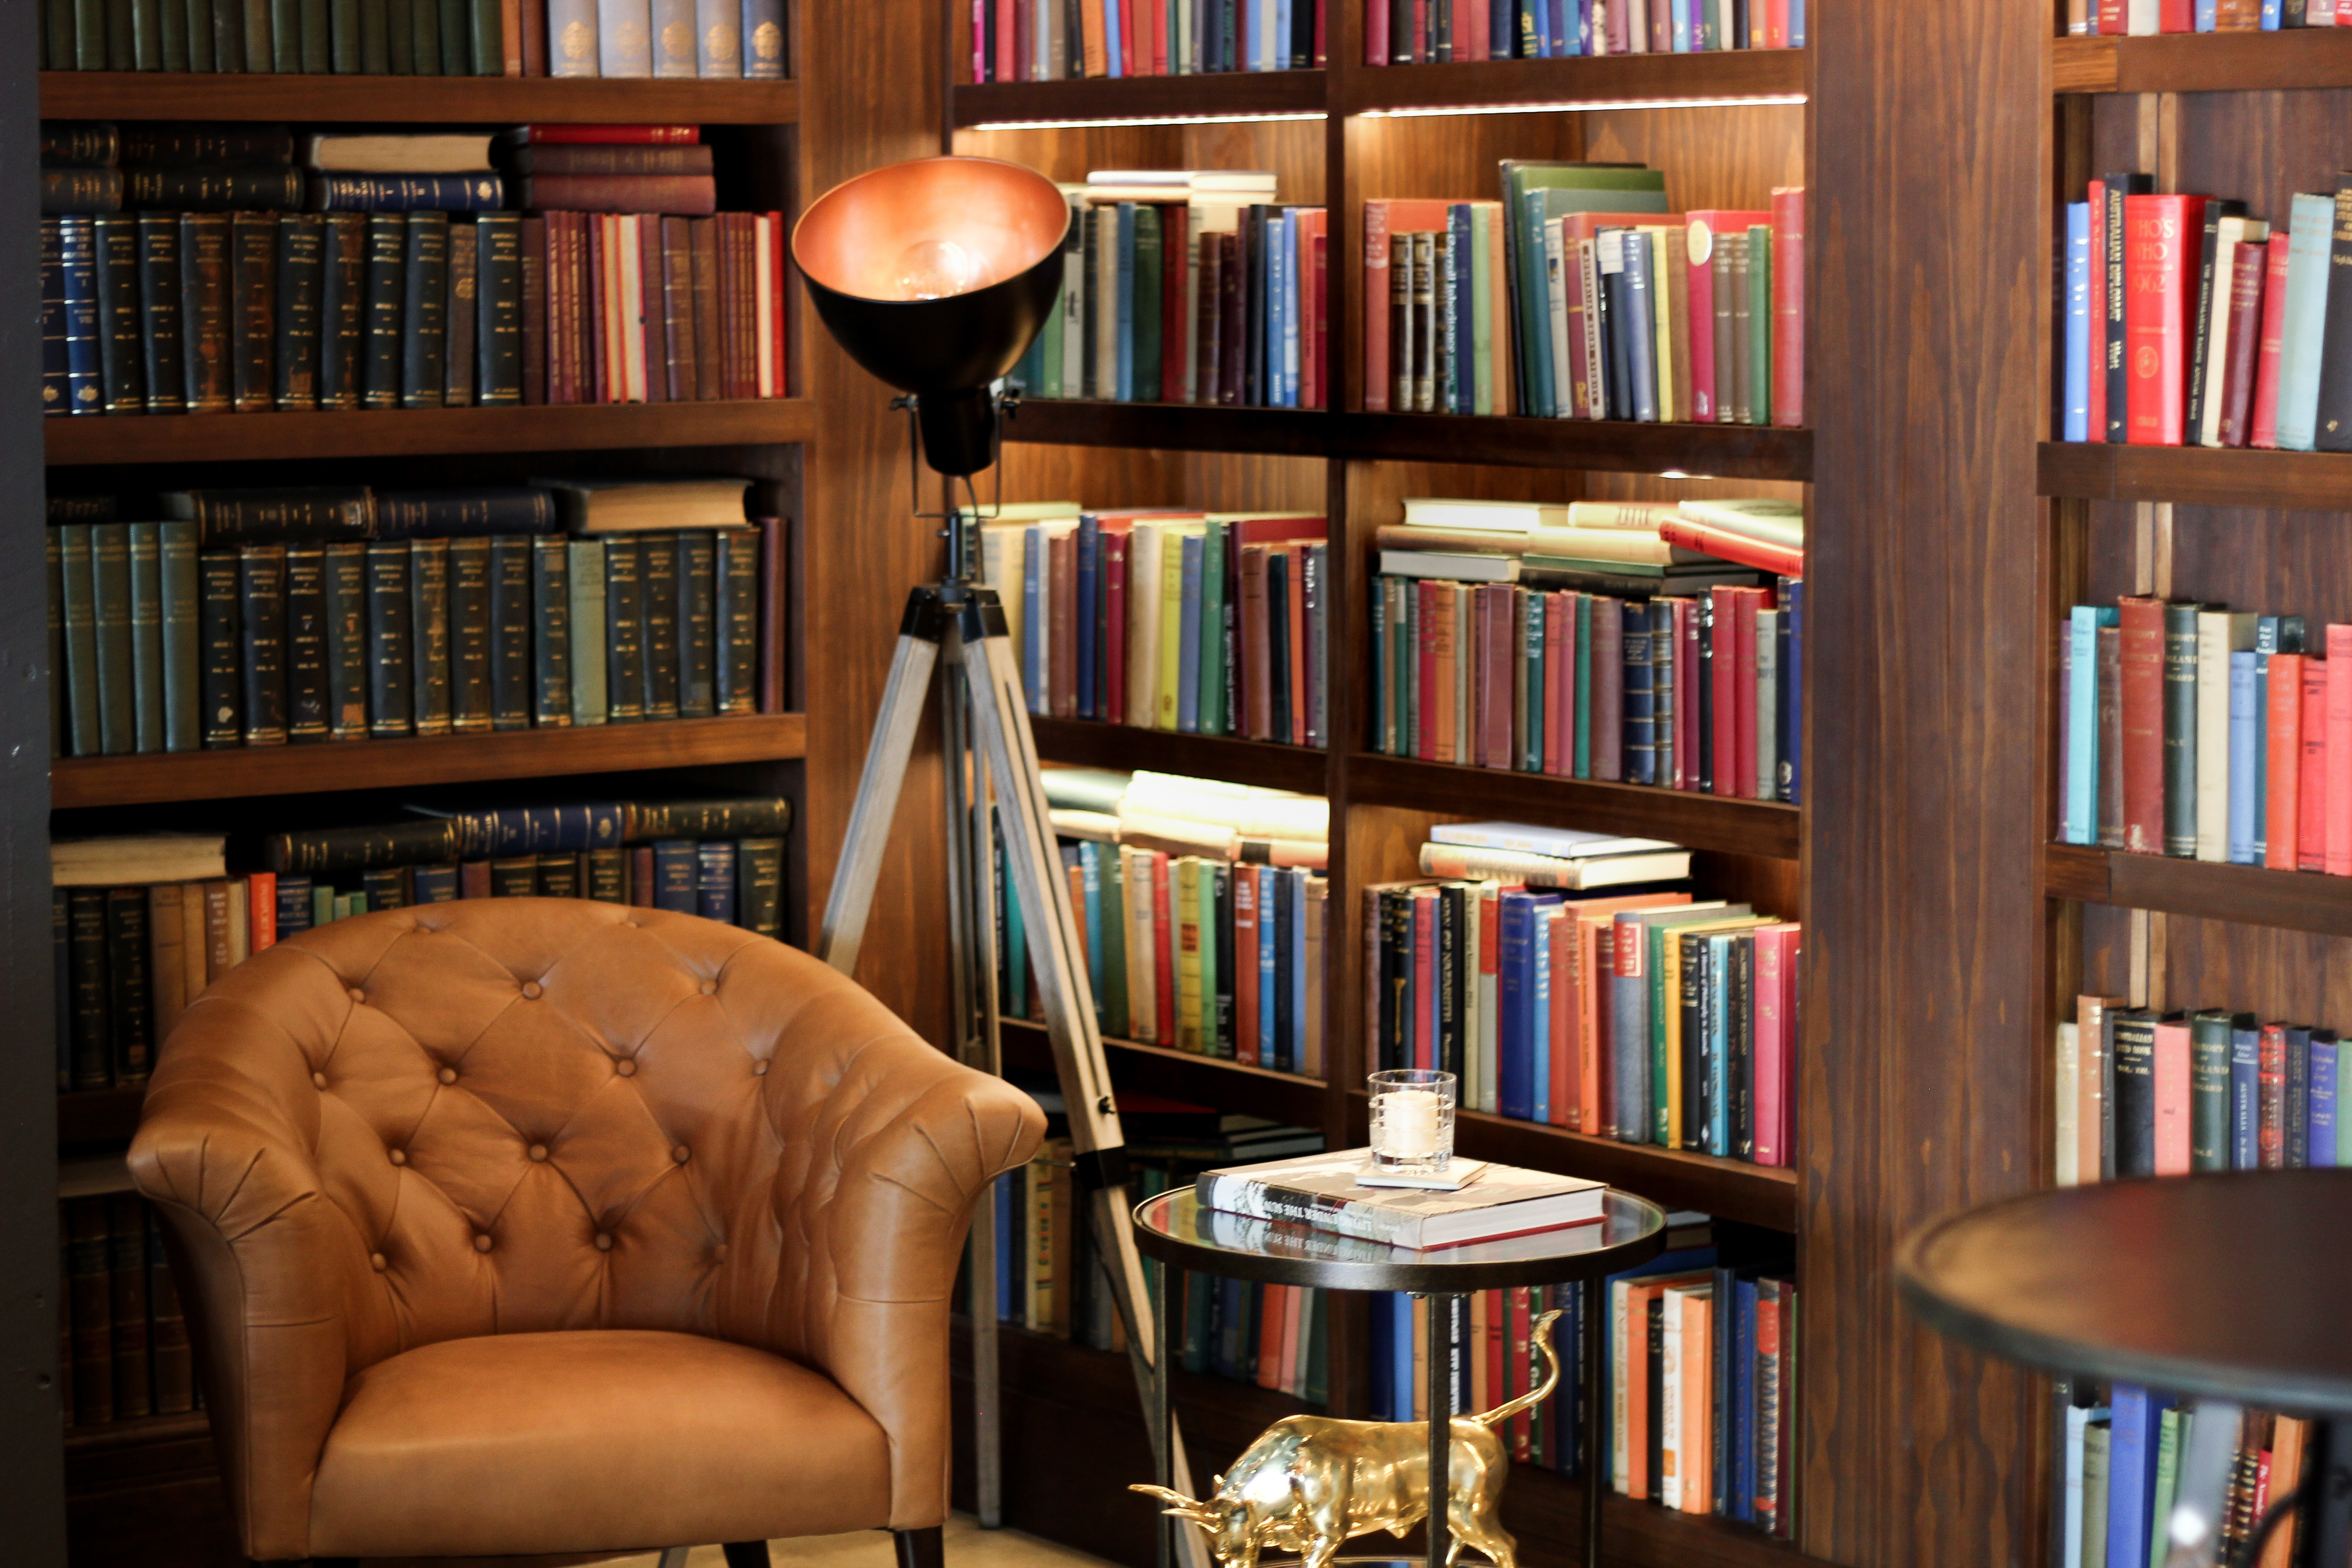 Woolloongabba Real estate office with Arm Chair & Books